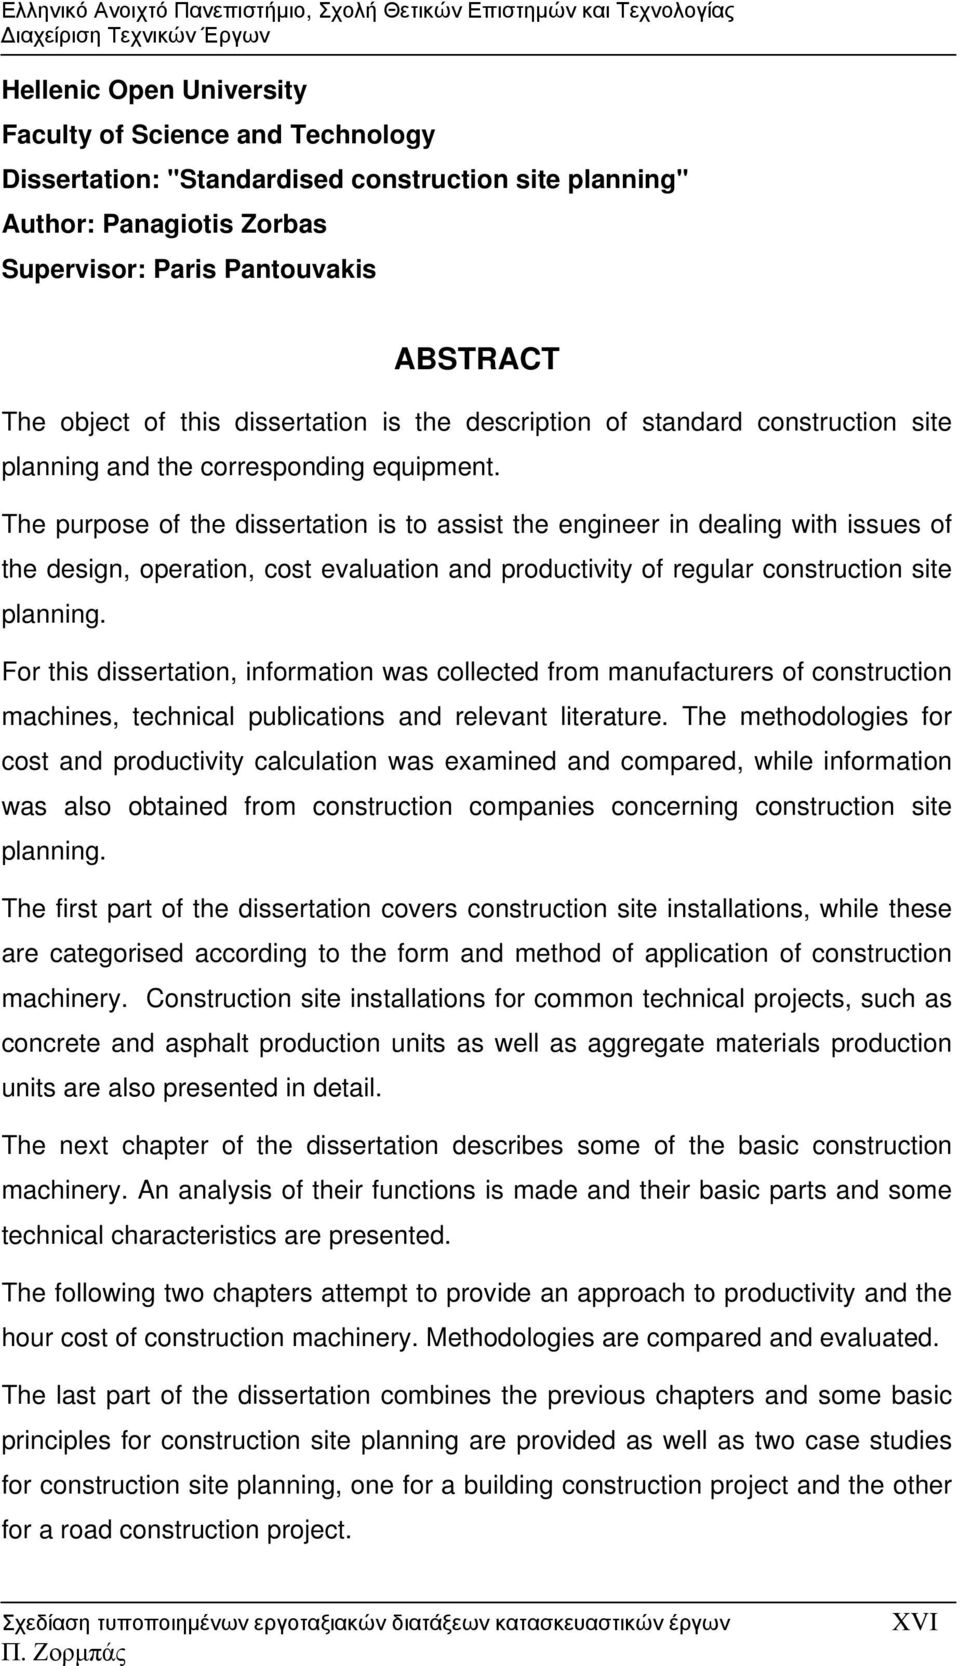 The purpose of the dissertation is to assist the engineer in dealing with issues of the design, operation, cost evaluation and productivity of regular construction site planning.